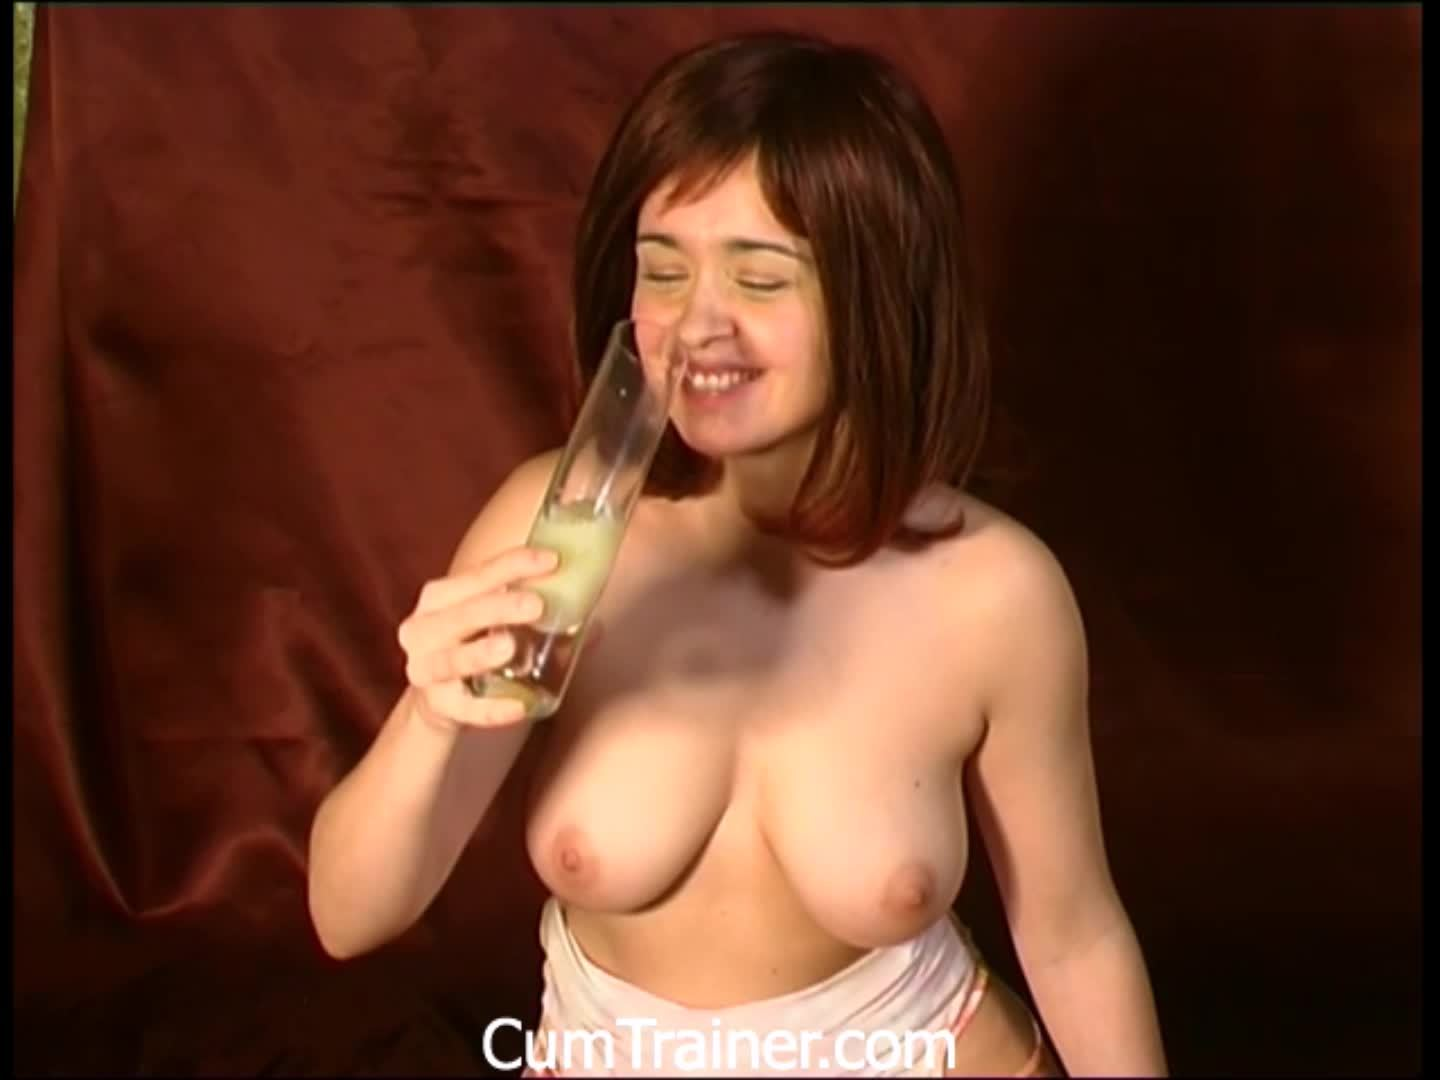 Best boob site woman